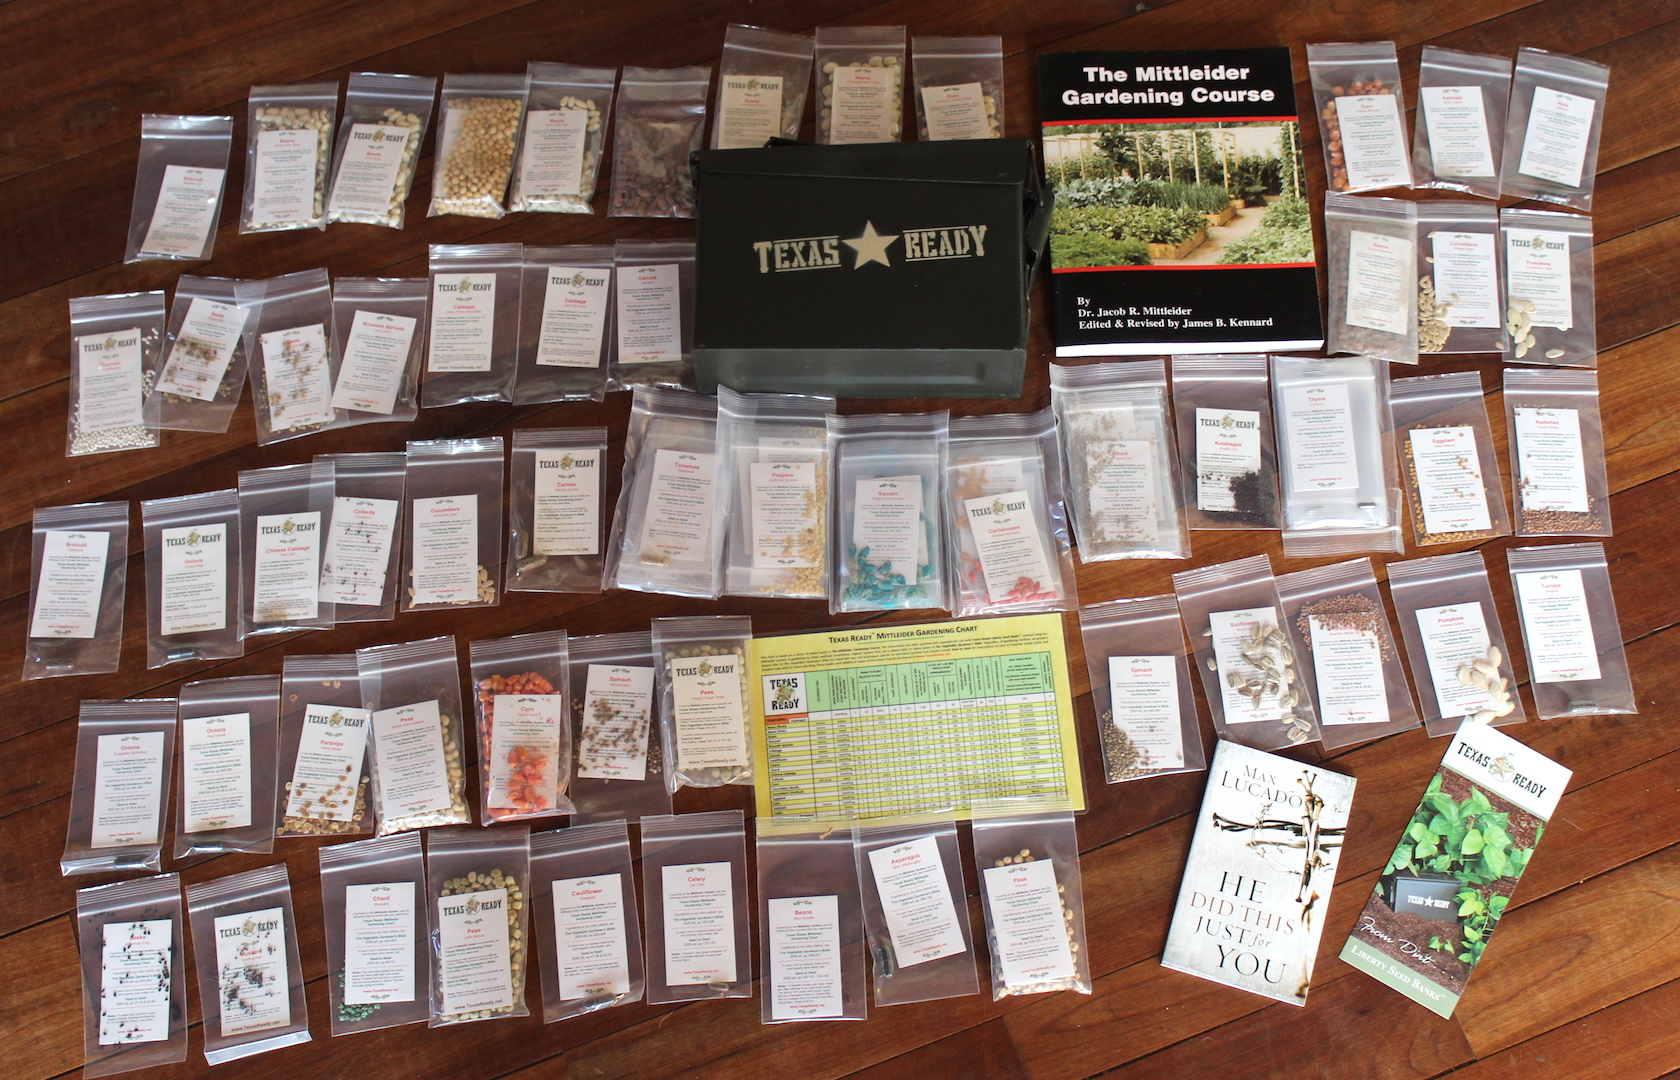 Texas Ready Survival Seed Bank